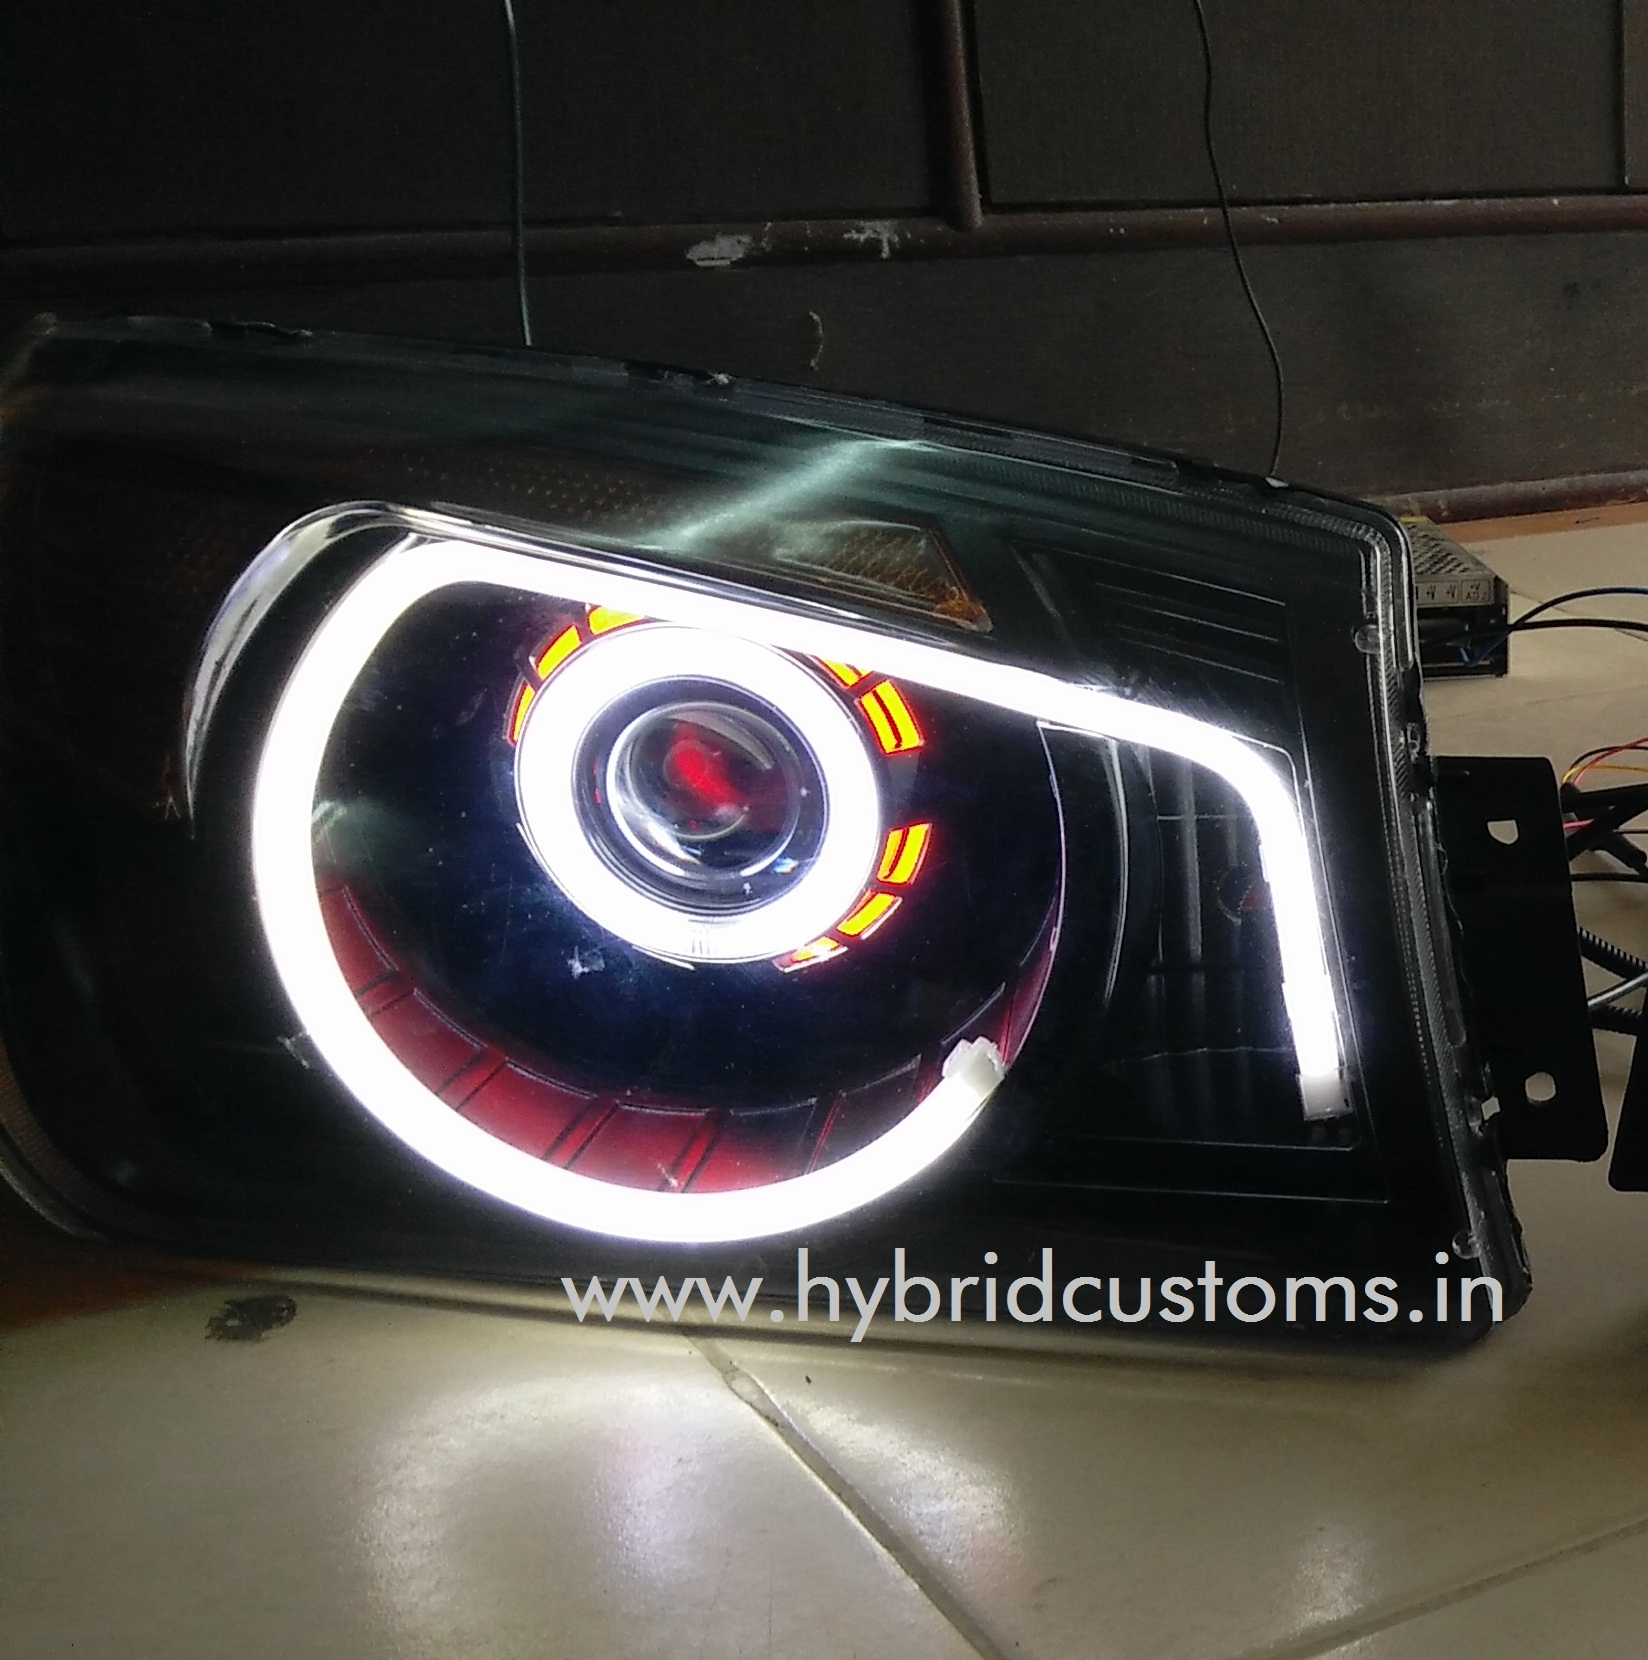 bolero custom projector headlights hybrid customs